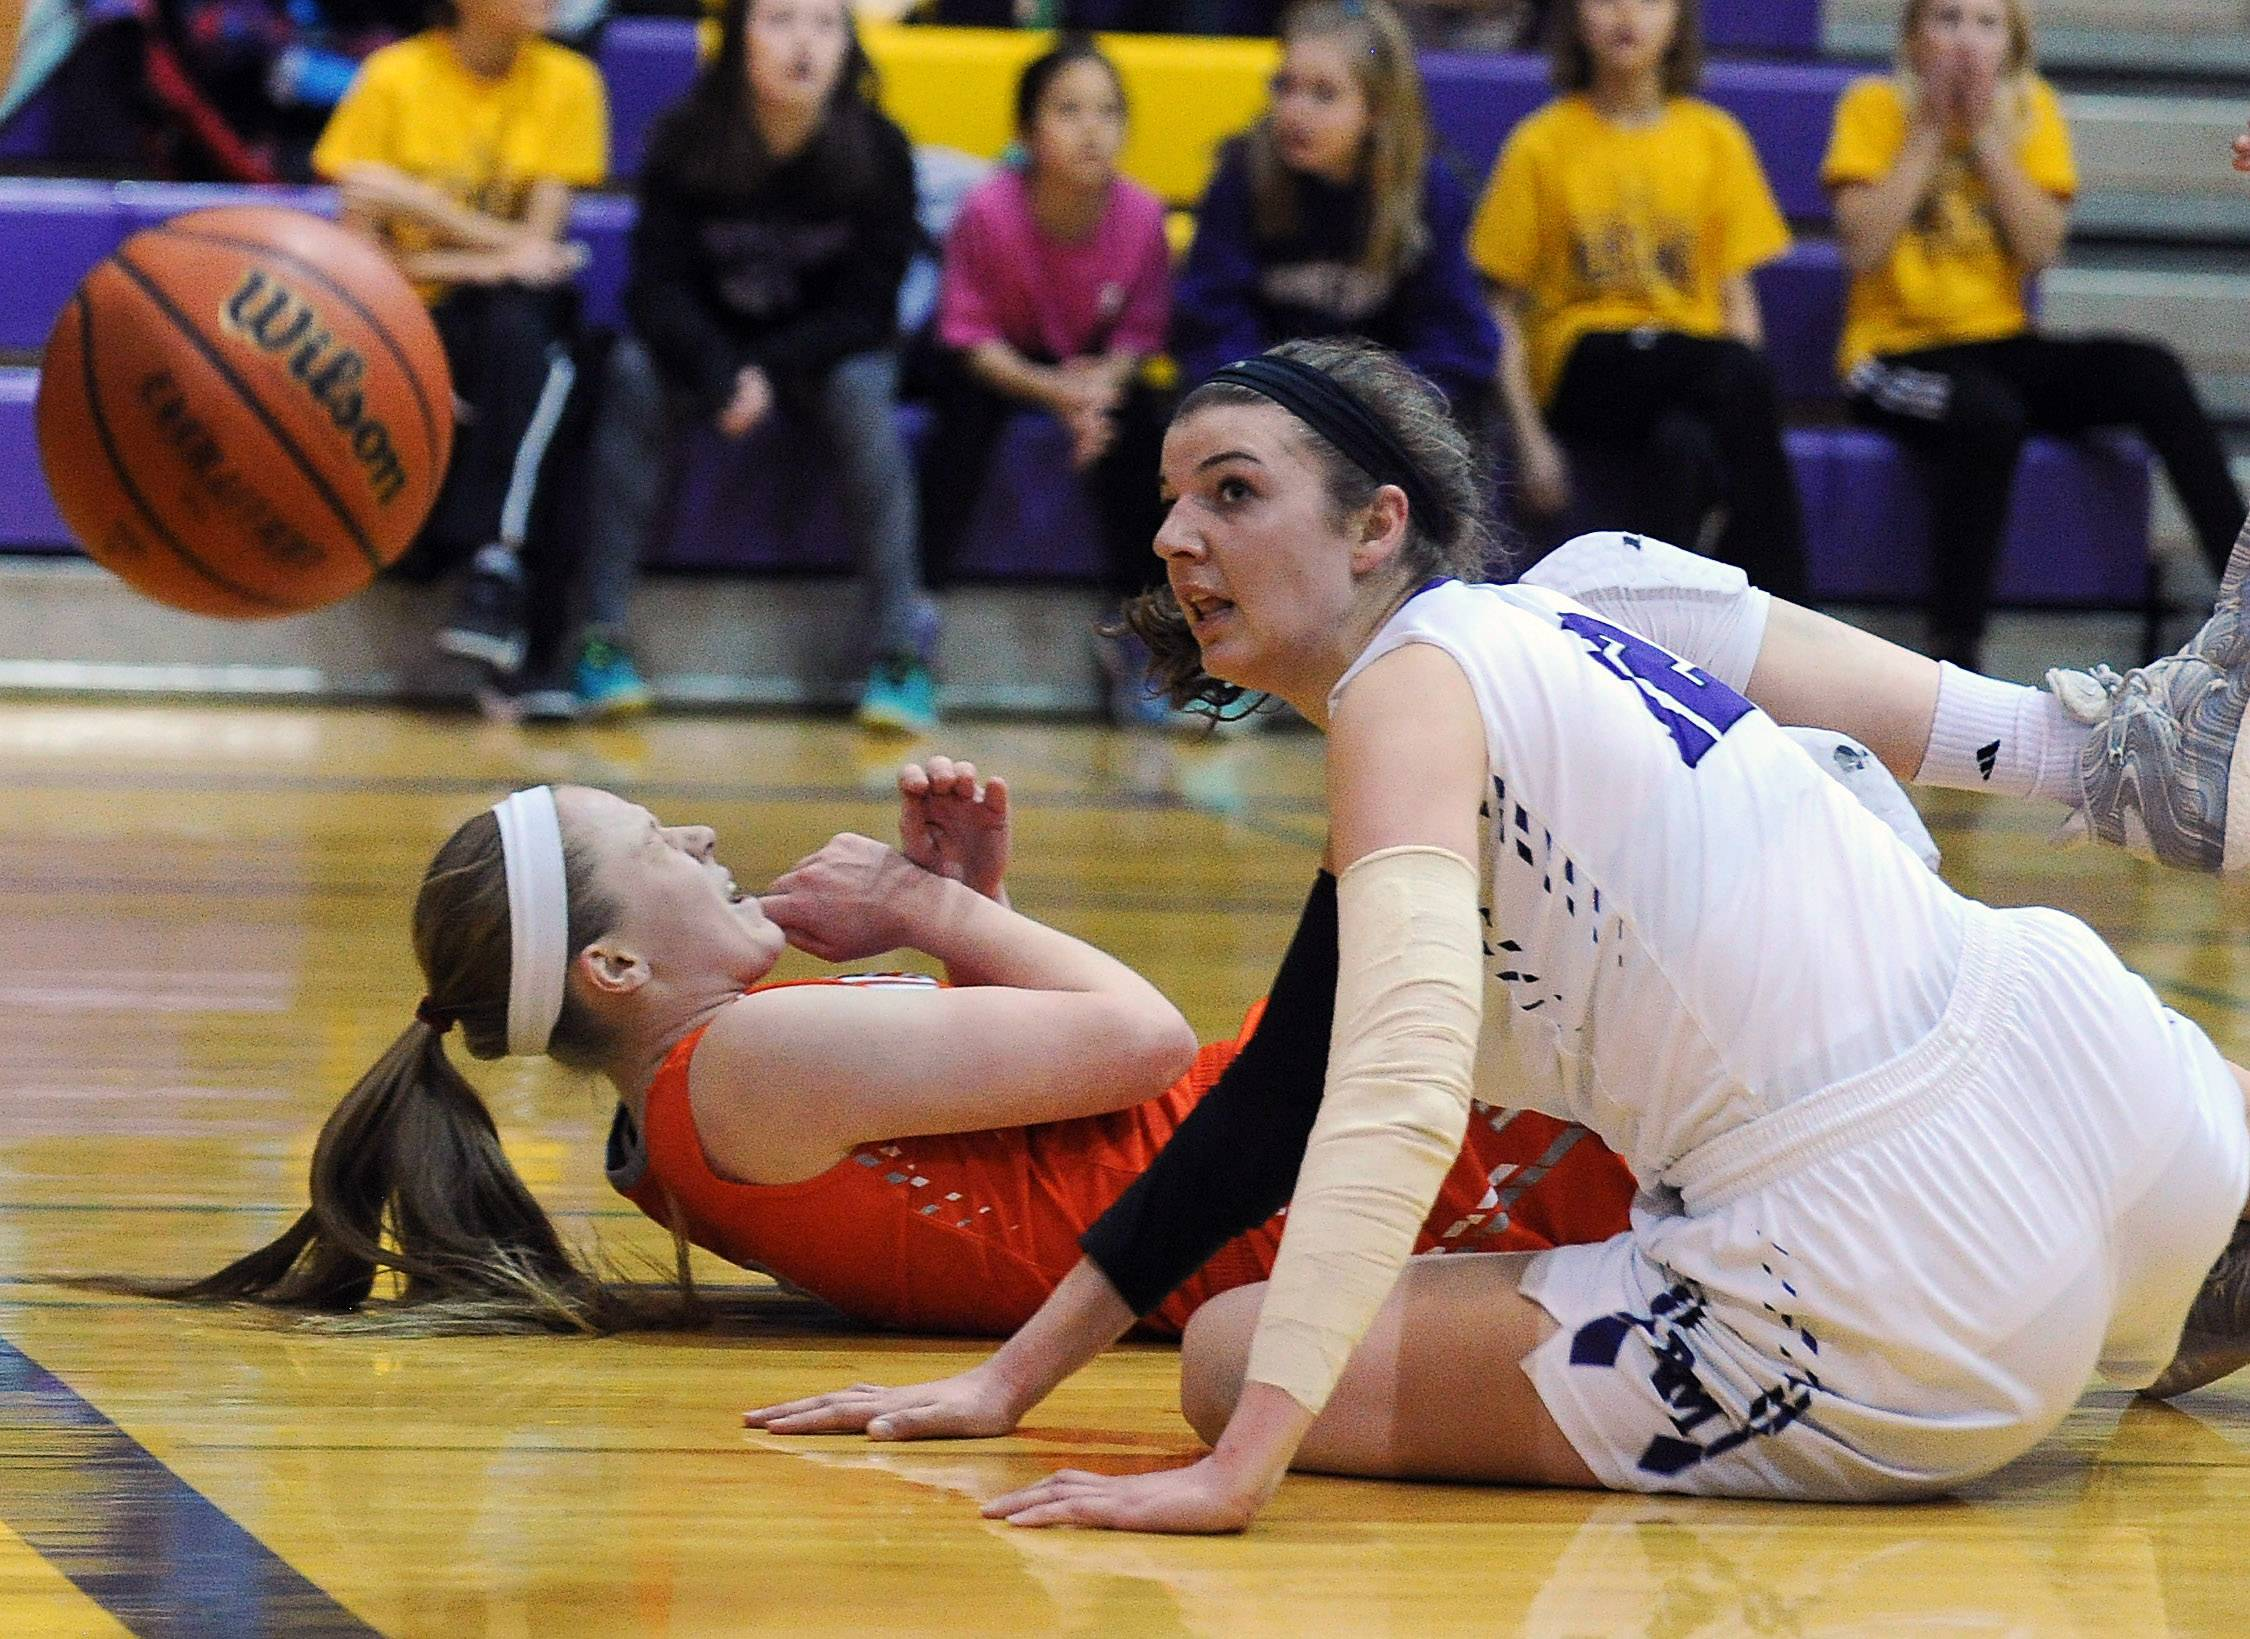 Hersey's Claire Gritt hits the floor brought down by Meadow's Morgan Campagna in the girls basketball game at Meadows on Friday.